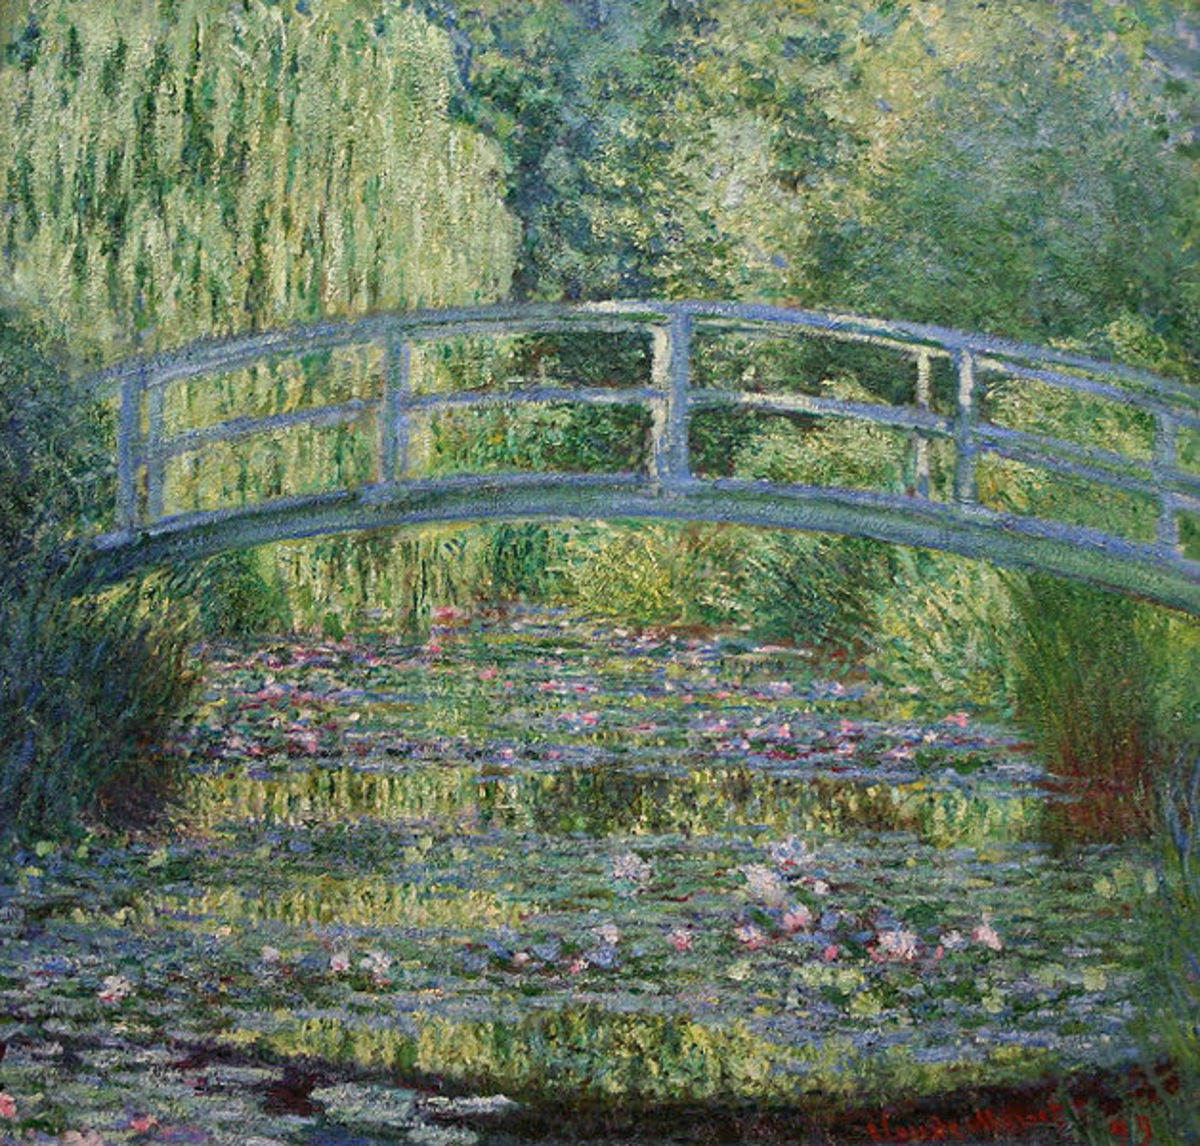 Claude Monet - Water Lilies and Japanese Bridge. Image coutesy of Wiki Commons